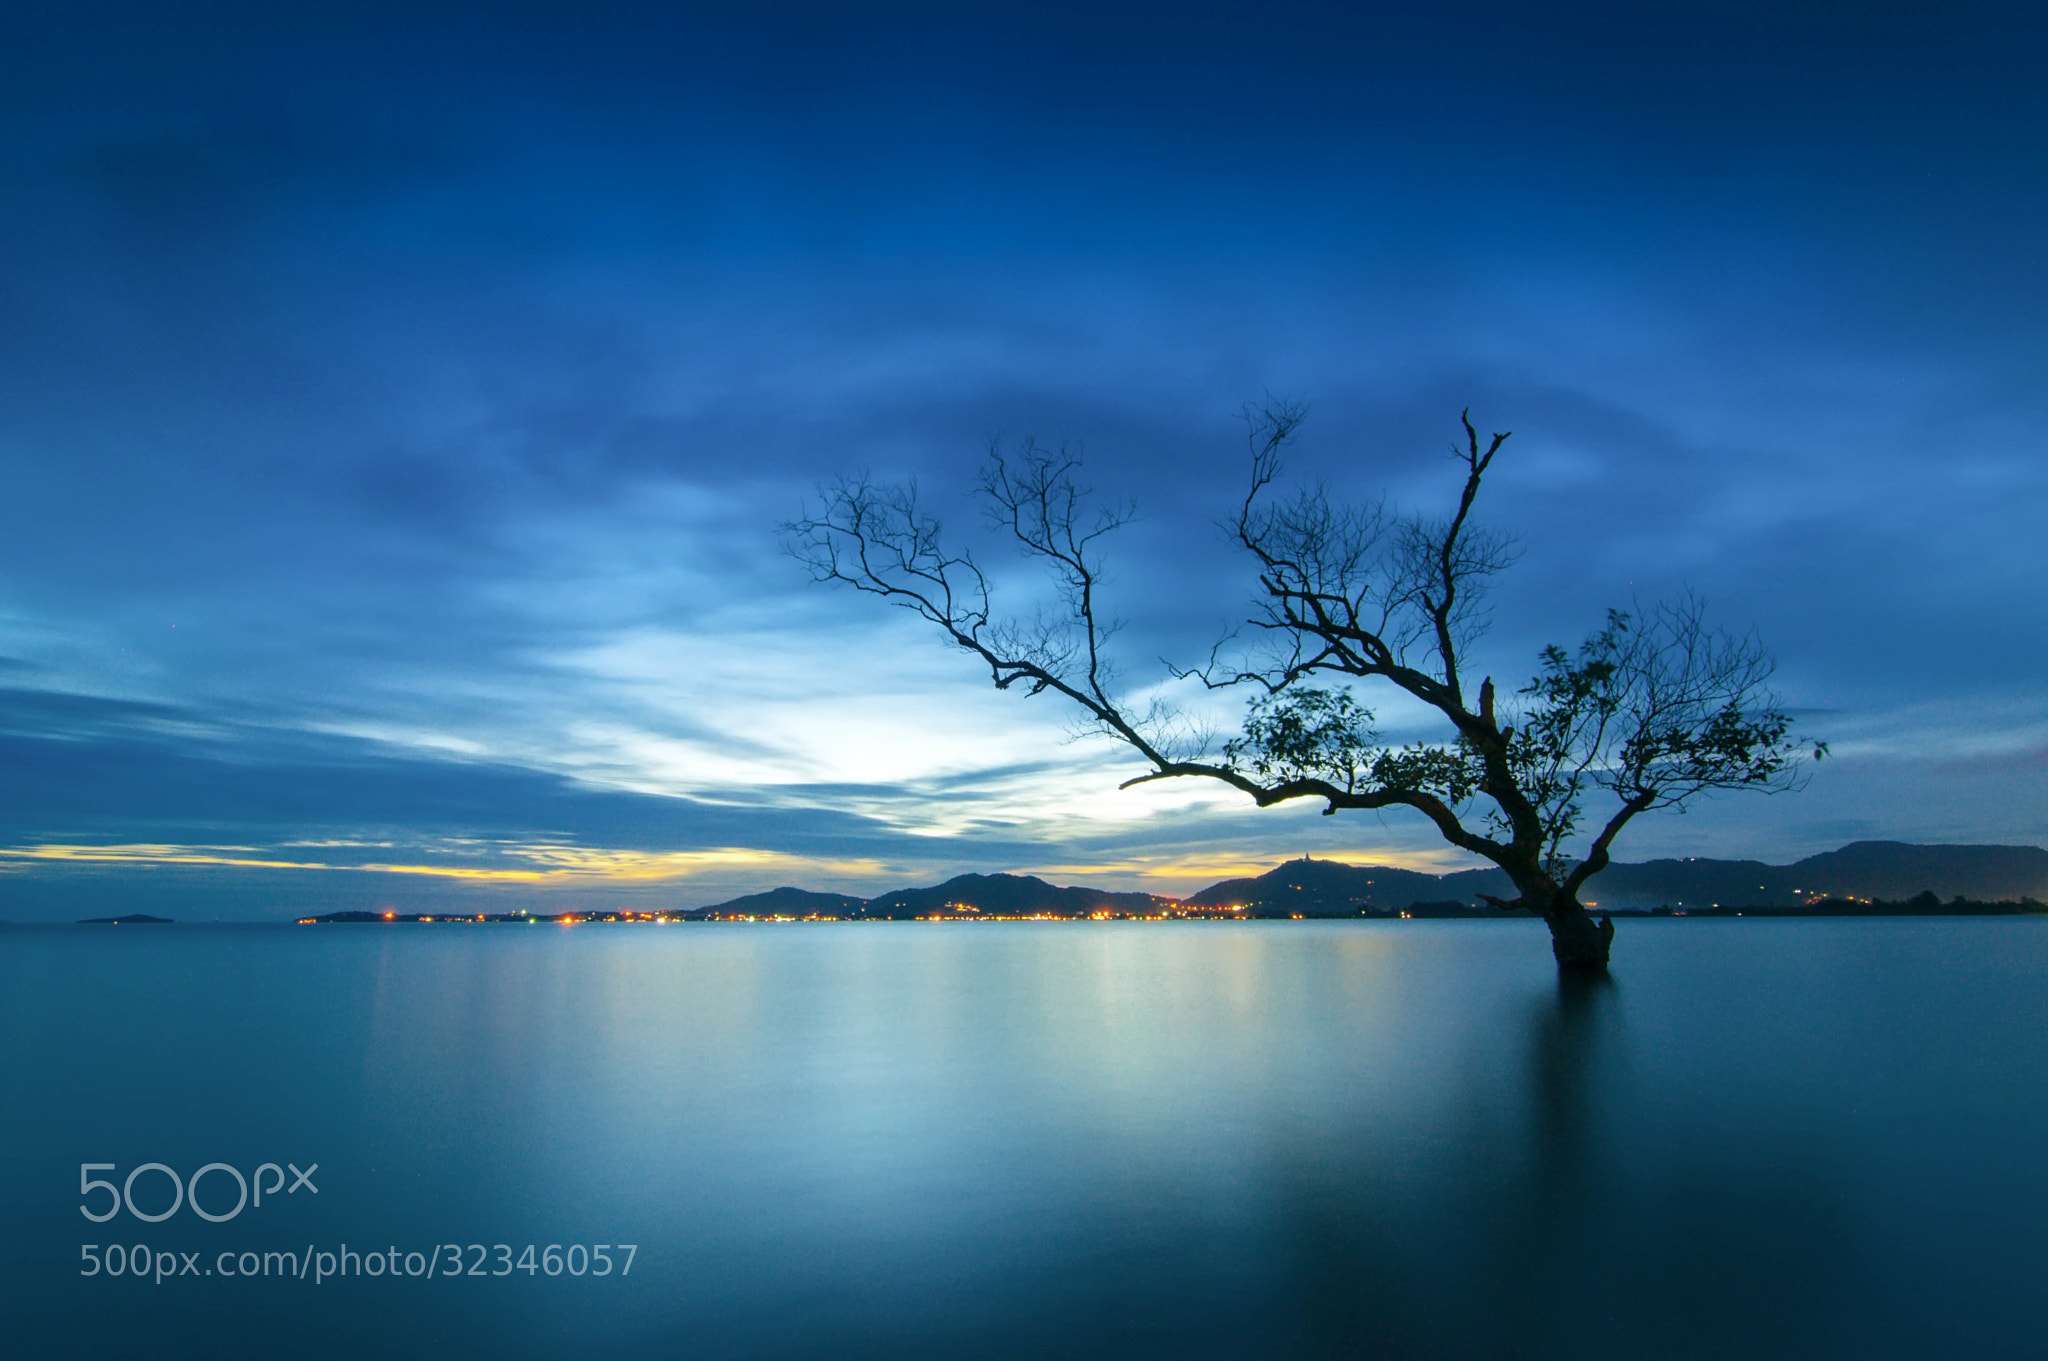 Photograph Blue Tone by giant2015 on 500px